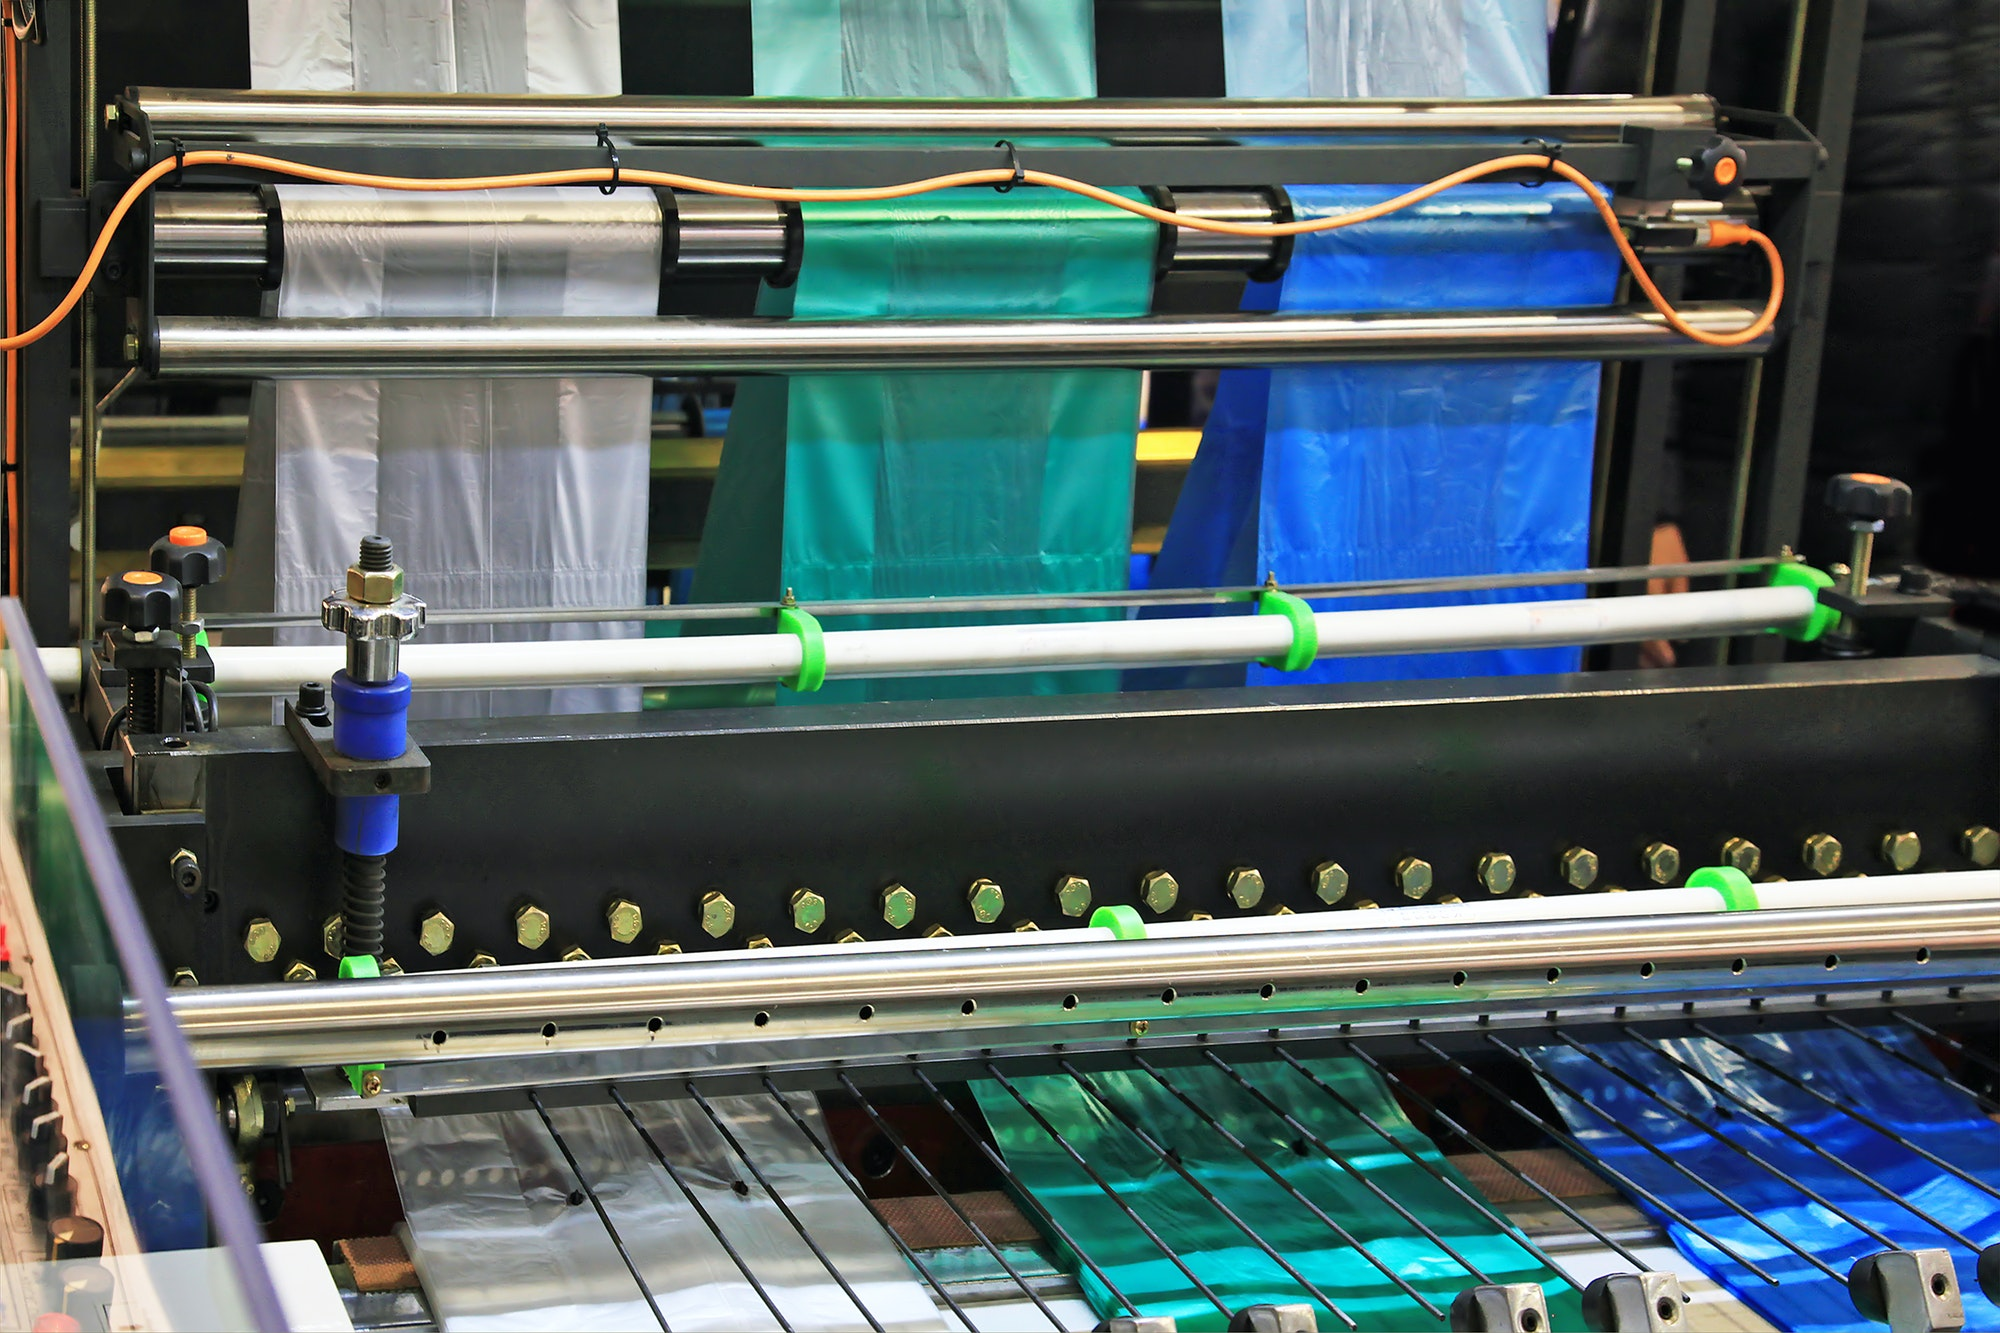 Manufacture of plastic bags